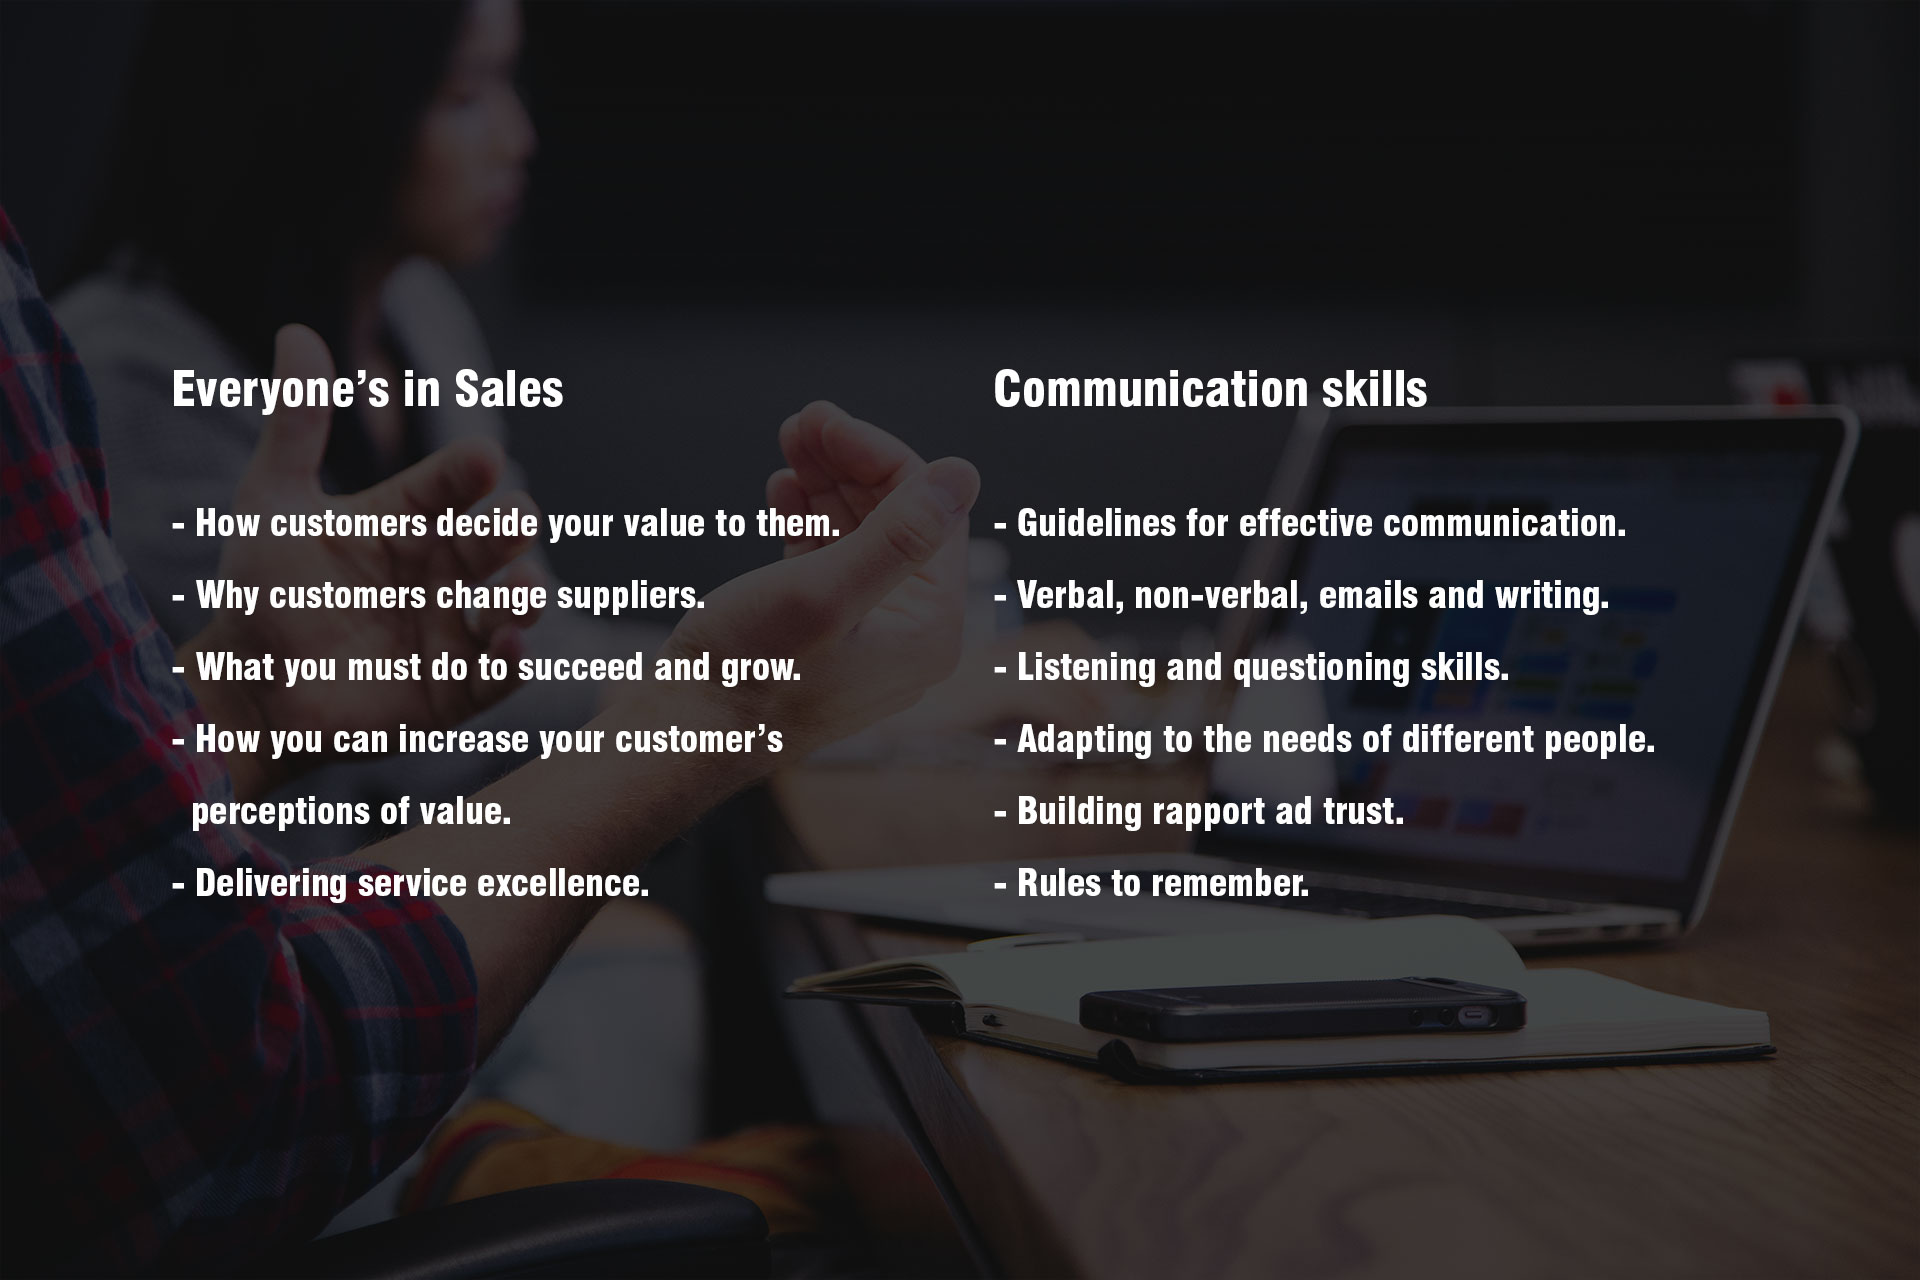 Everyone's in sales and communication skills modules and tools